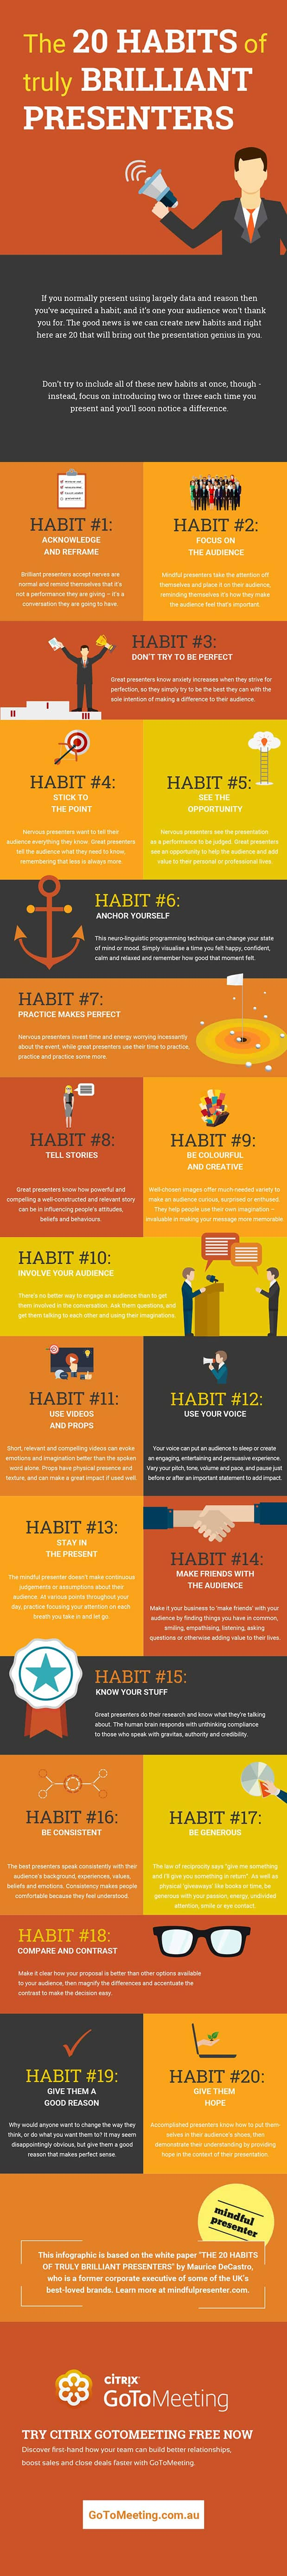 754AU_20-habits-of-truly-brilliant-speakers